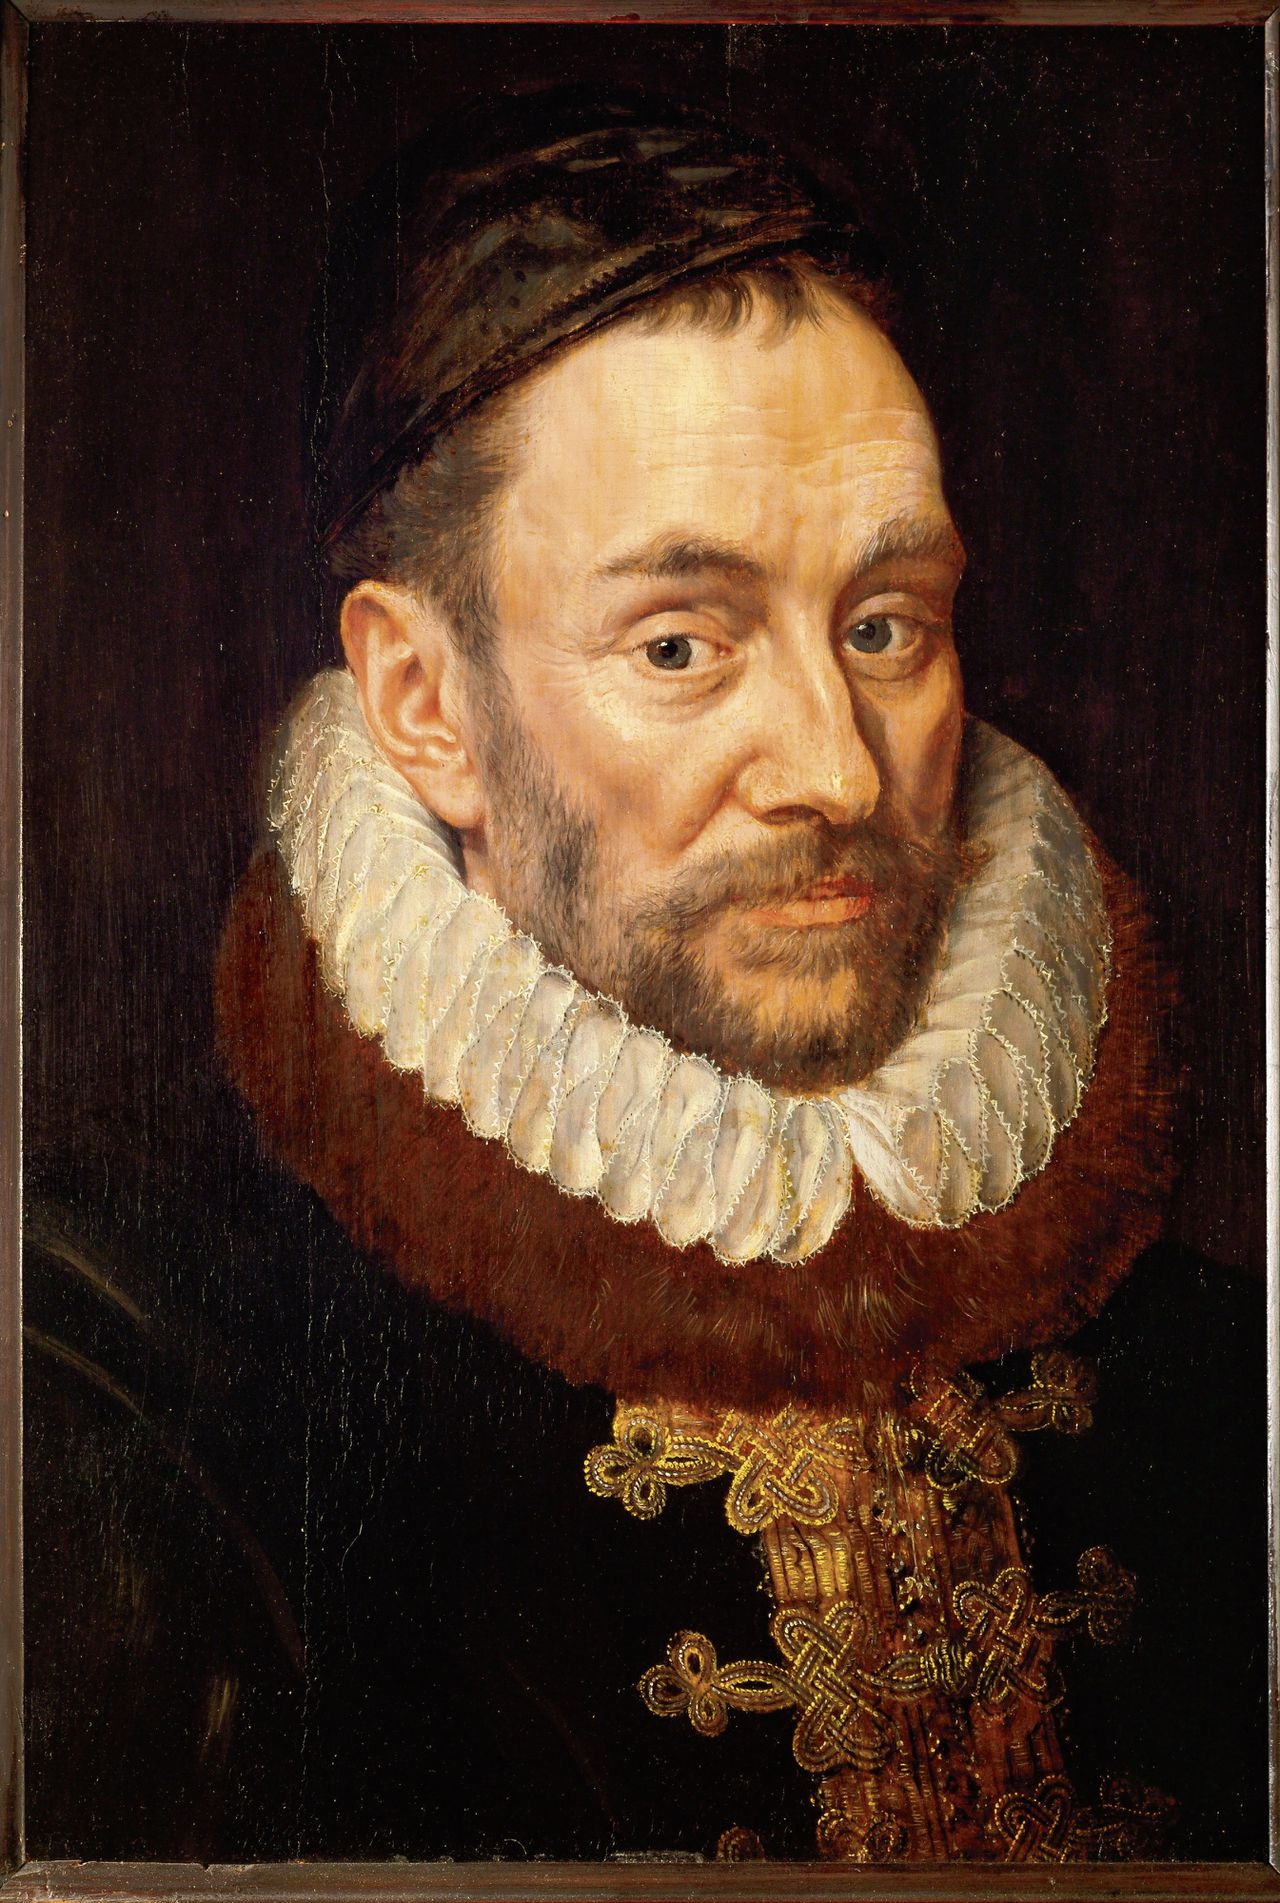 Willem van Oranje door Adriaen Thomasz Key